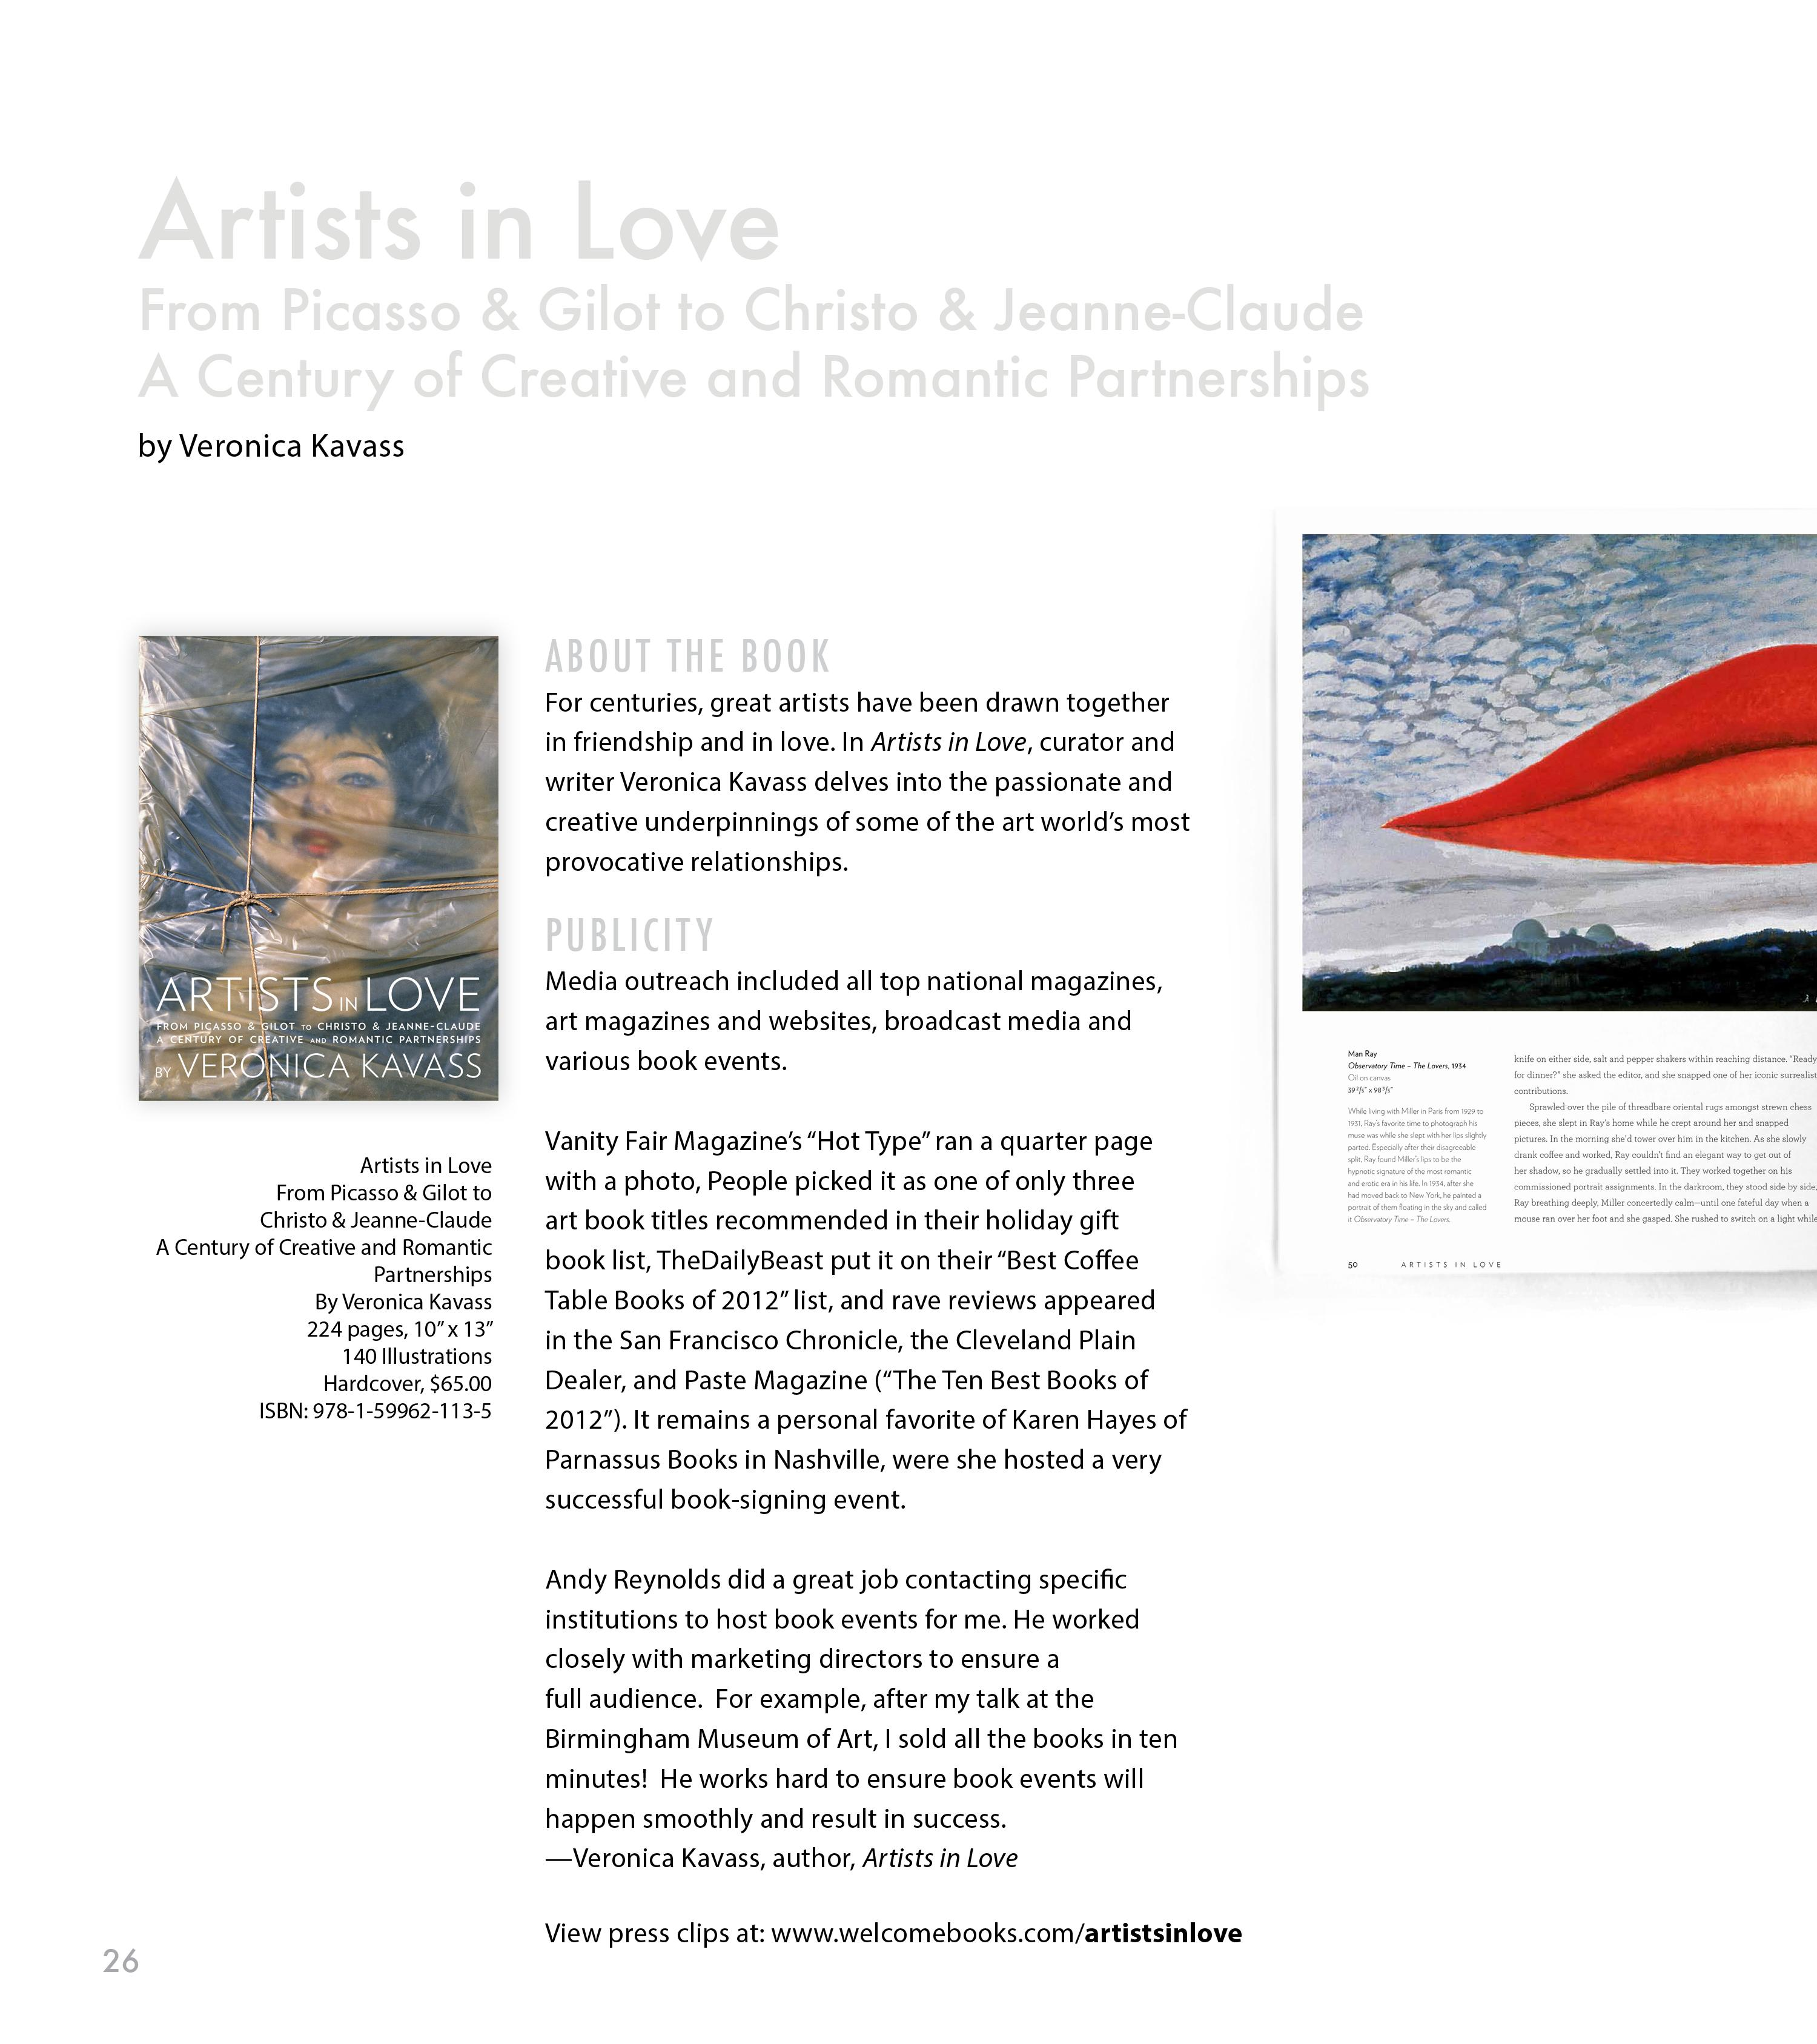 Page 26 of Artists in Love